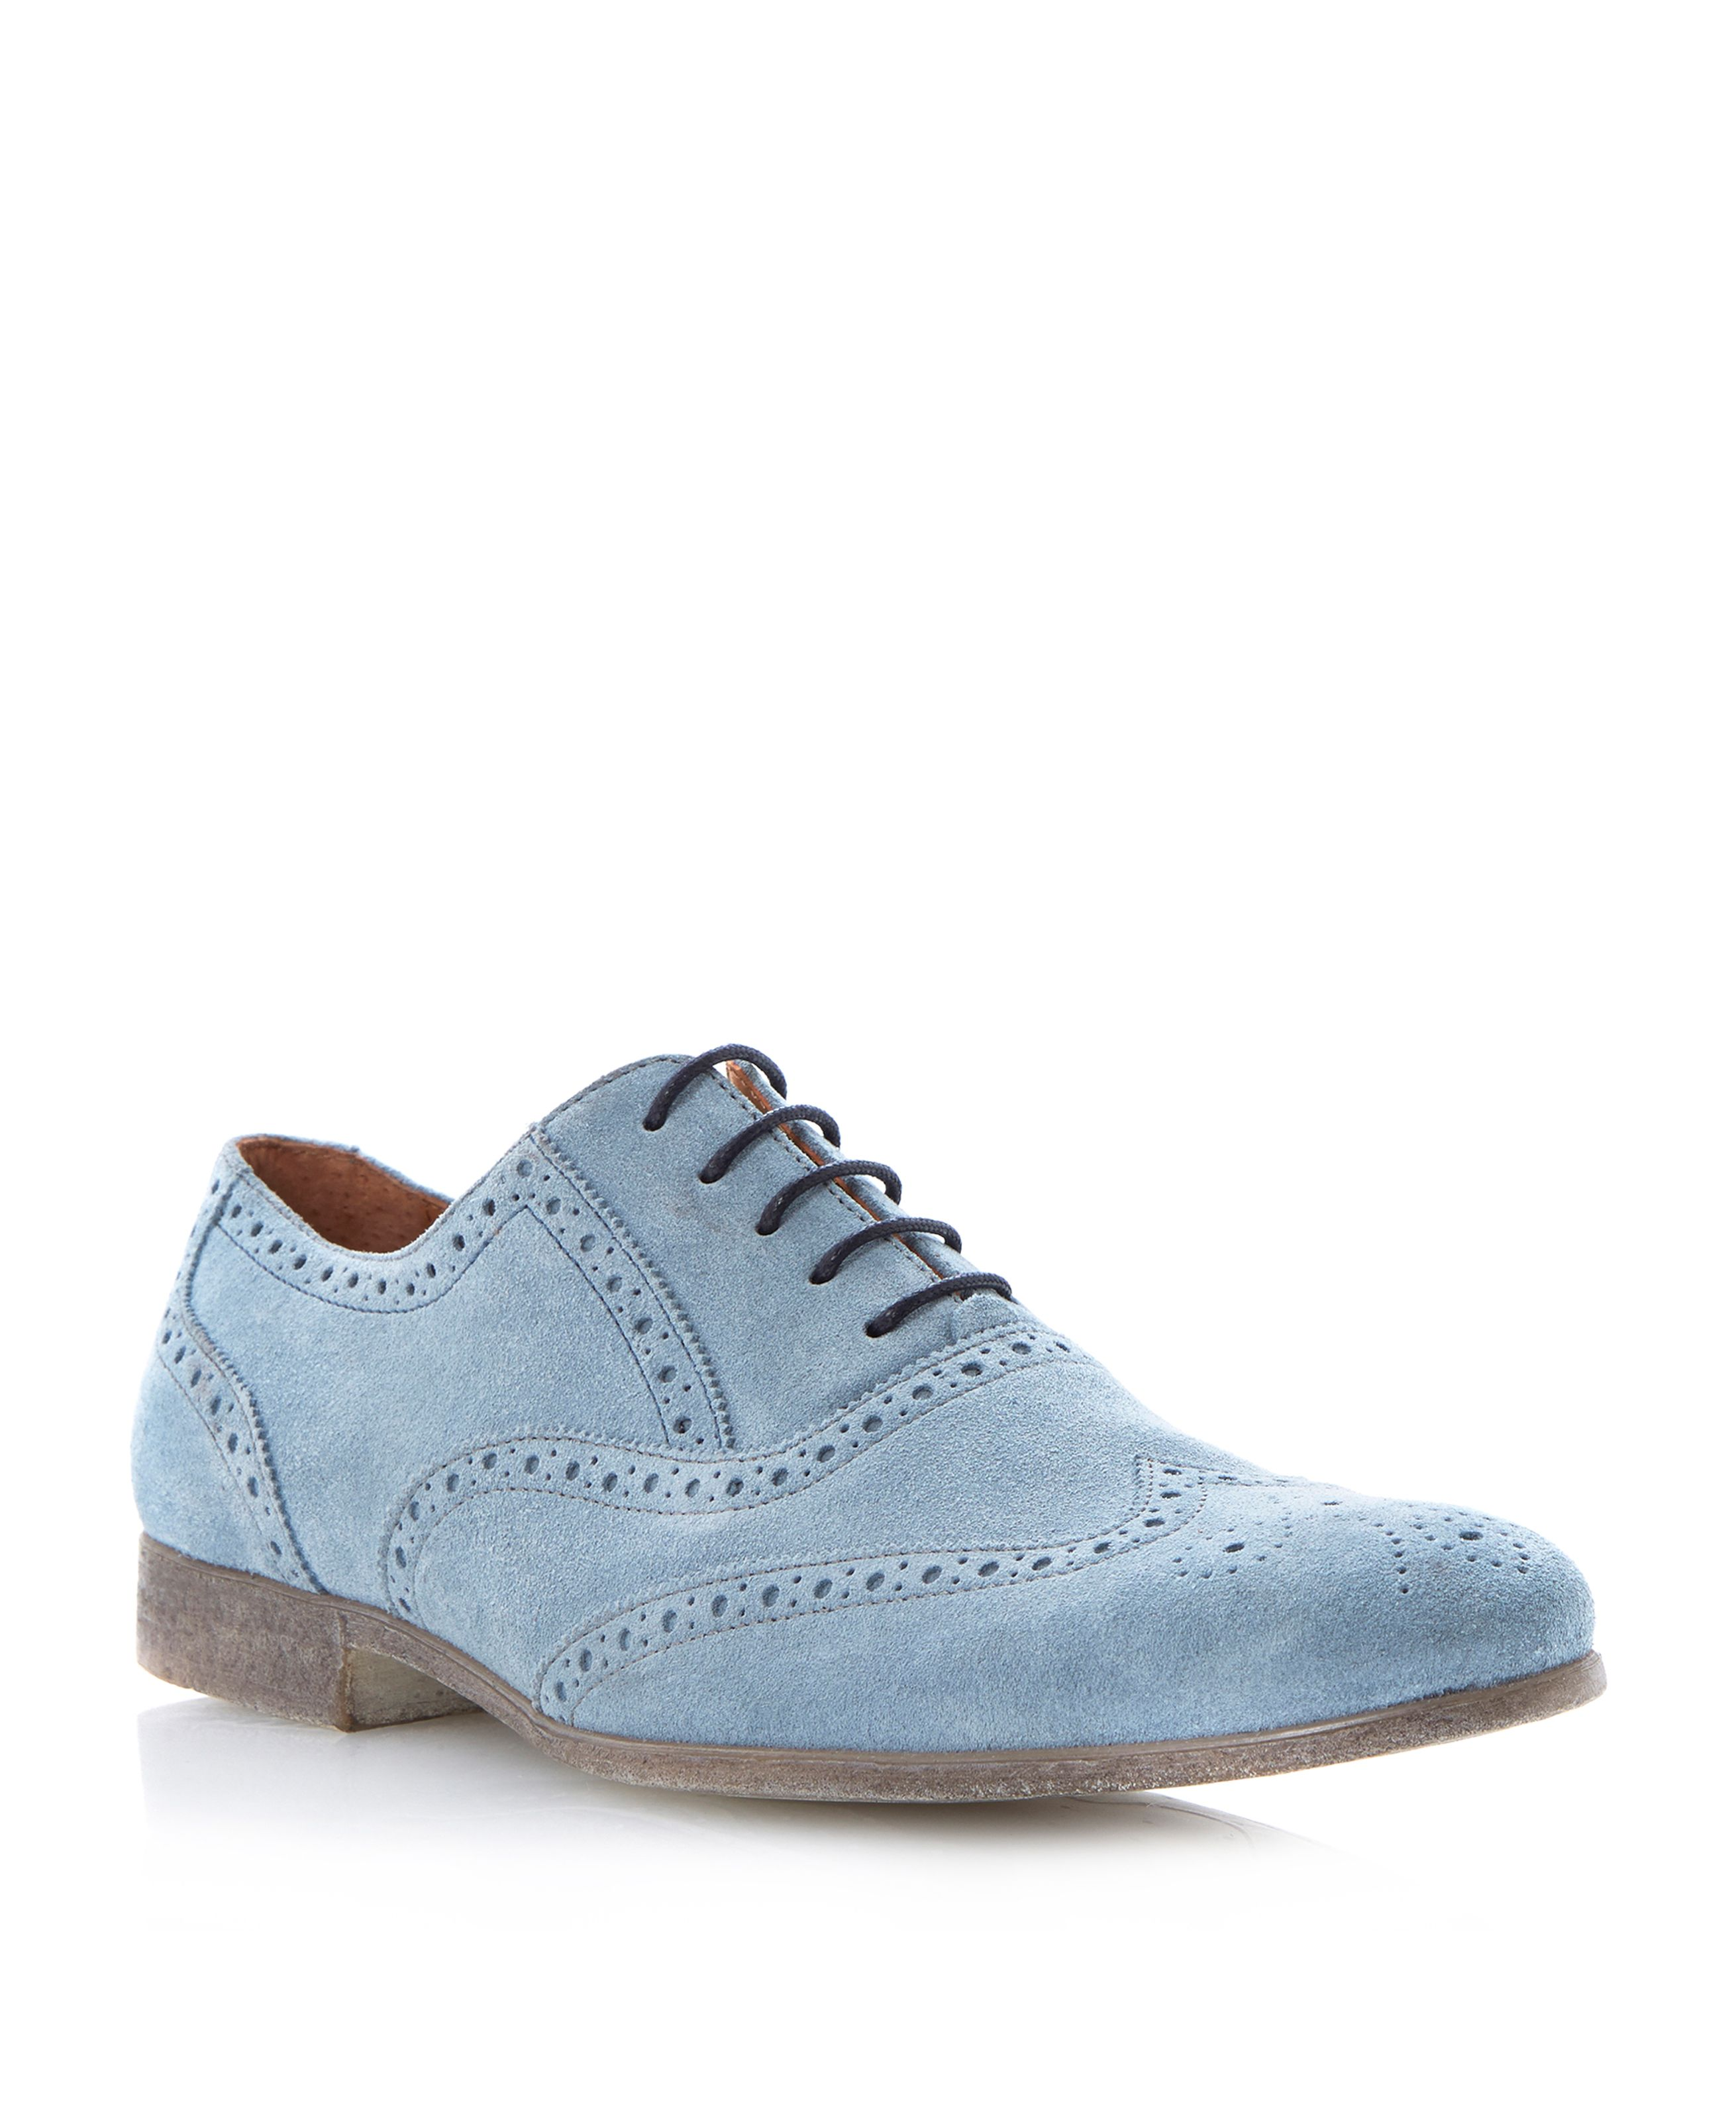 Rayman suede wingtip oxford lace up brogues